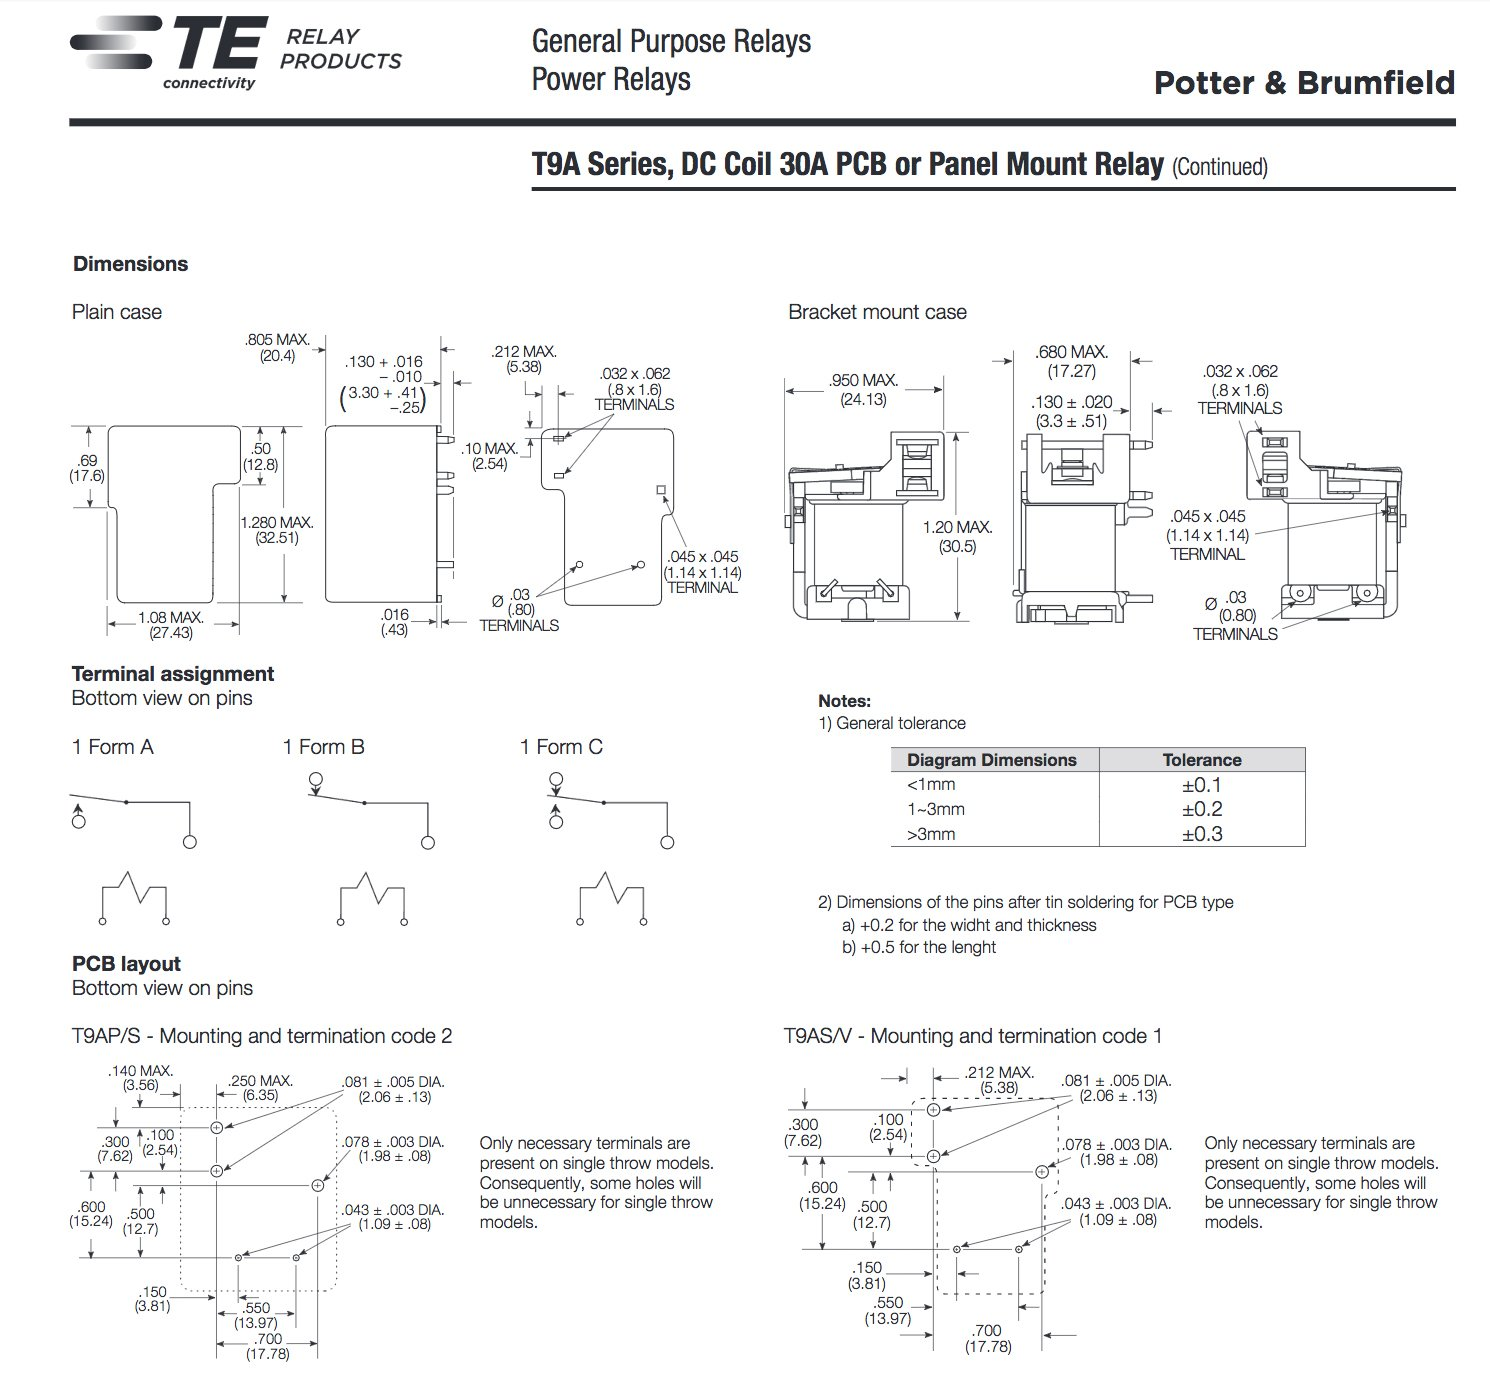 Thermostat Wiring Diagram On Atwood 8535 Furnace Wiring Diagram For